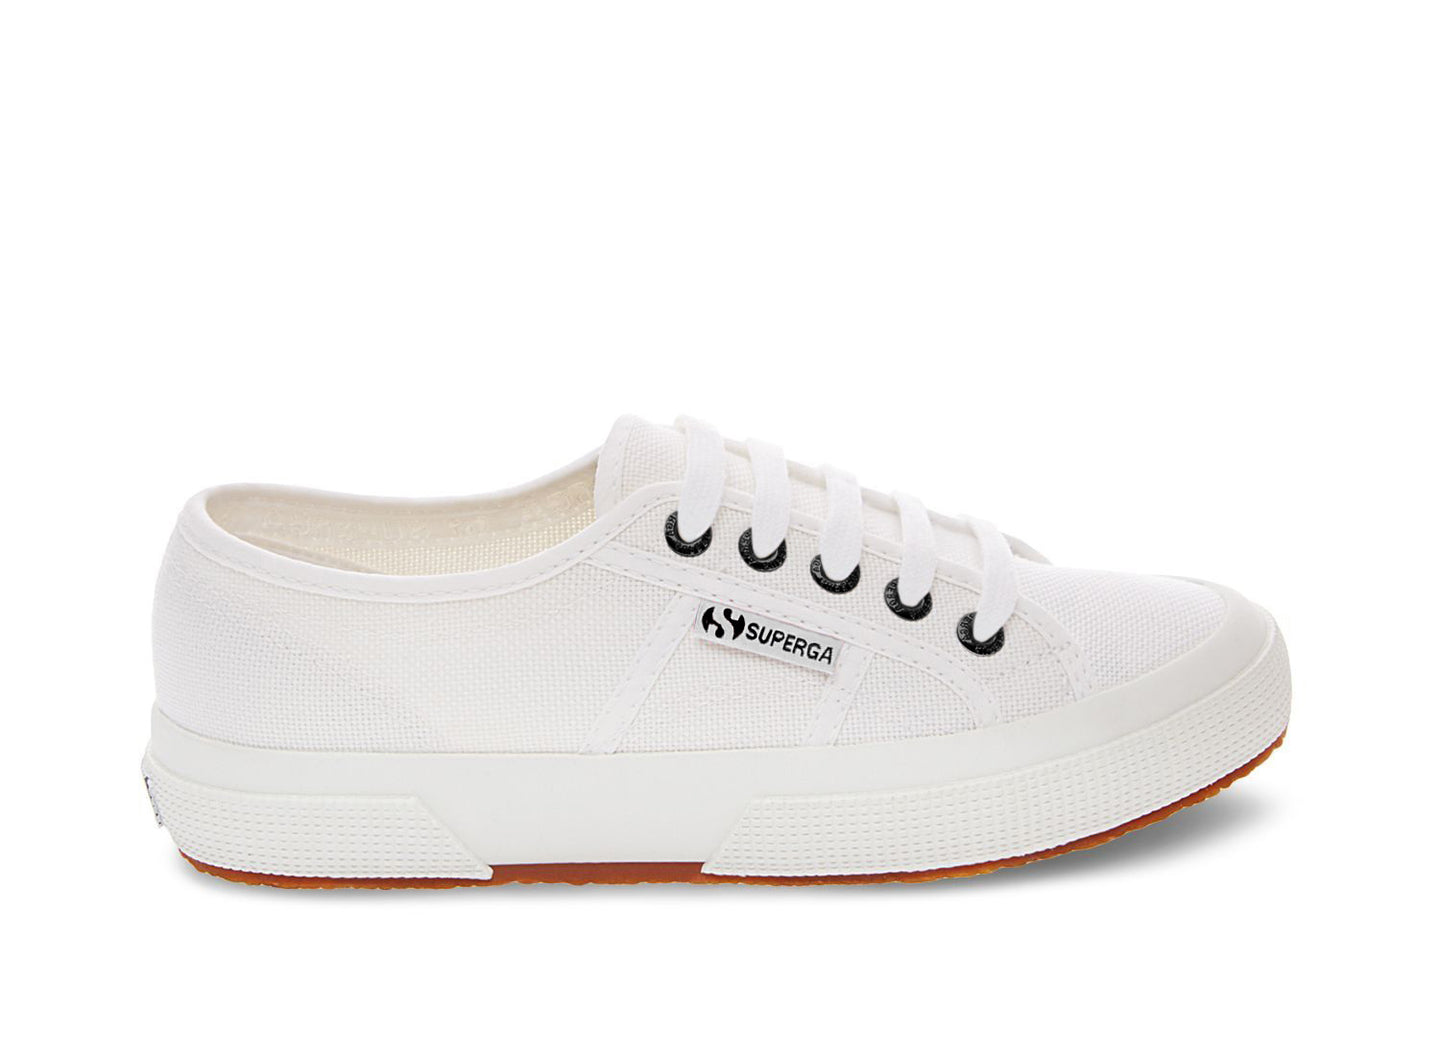 2750-COTW CONTRAST WHITE GREY - Women's